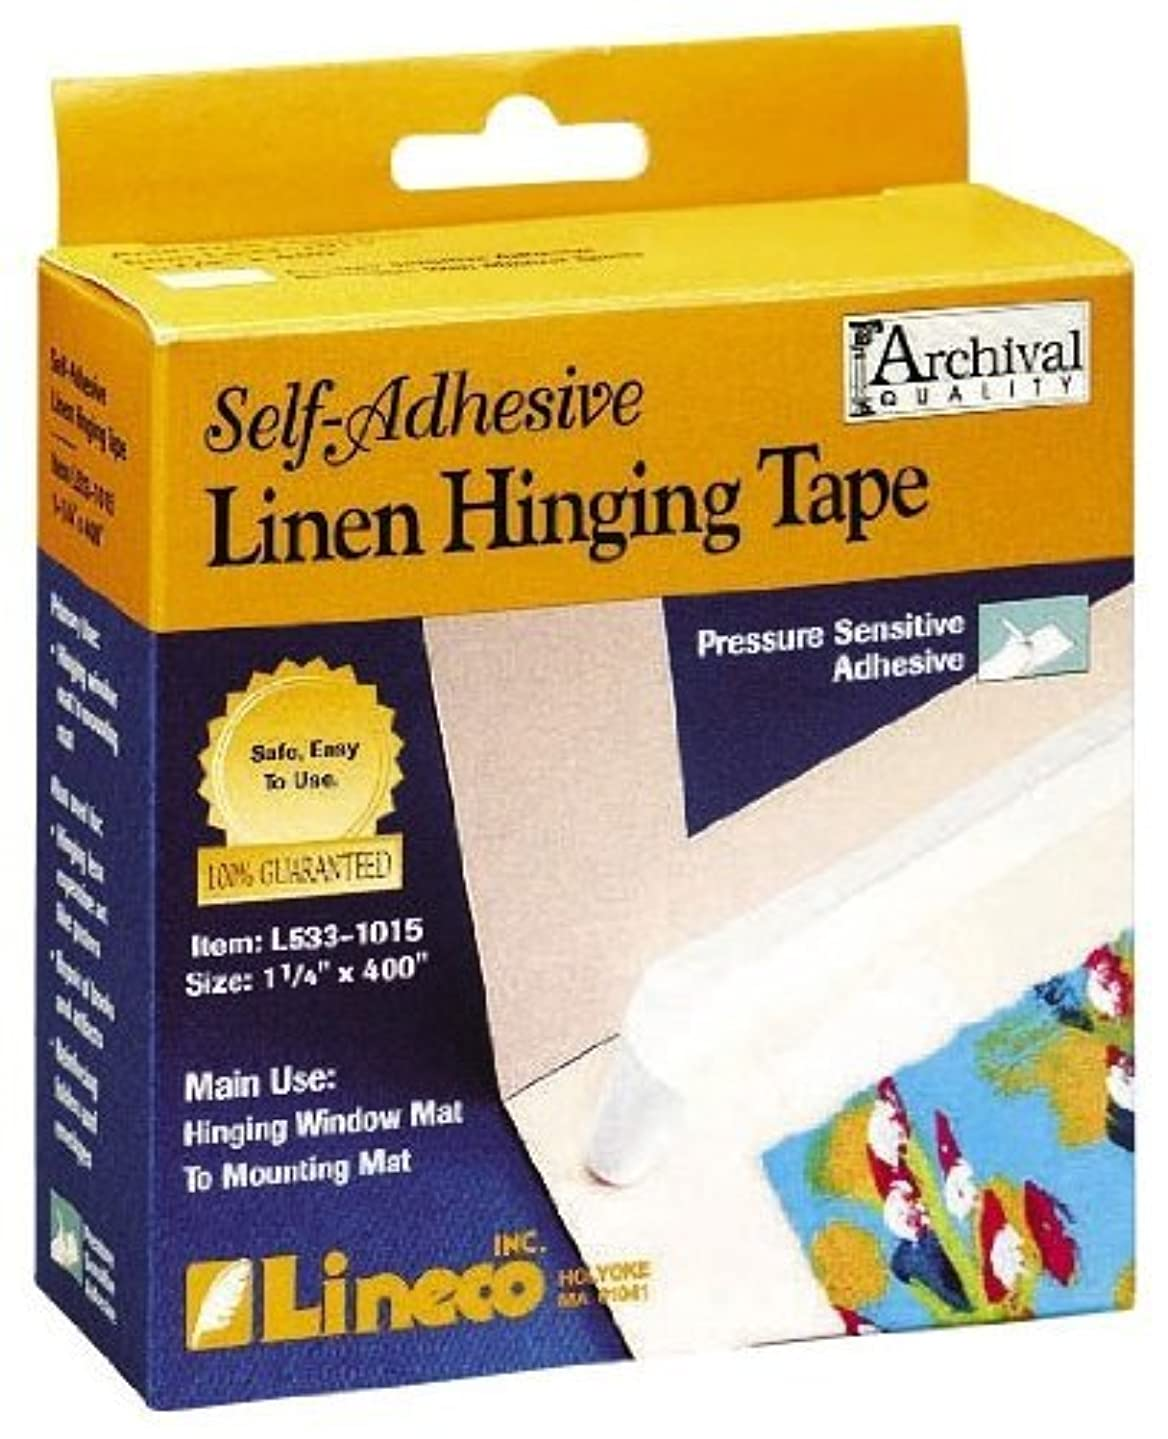 Lineco Self Adhesive Linen Hinging Tape 1.25 in. x 35 ft. white linen tape (2, White)